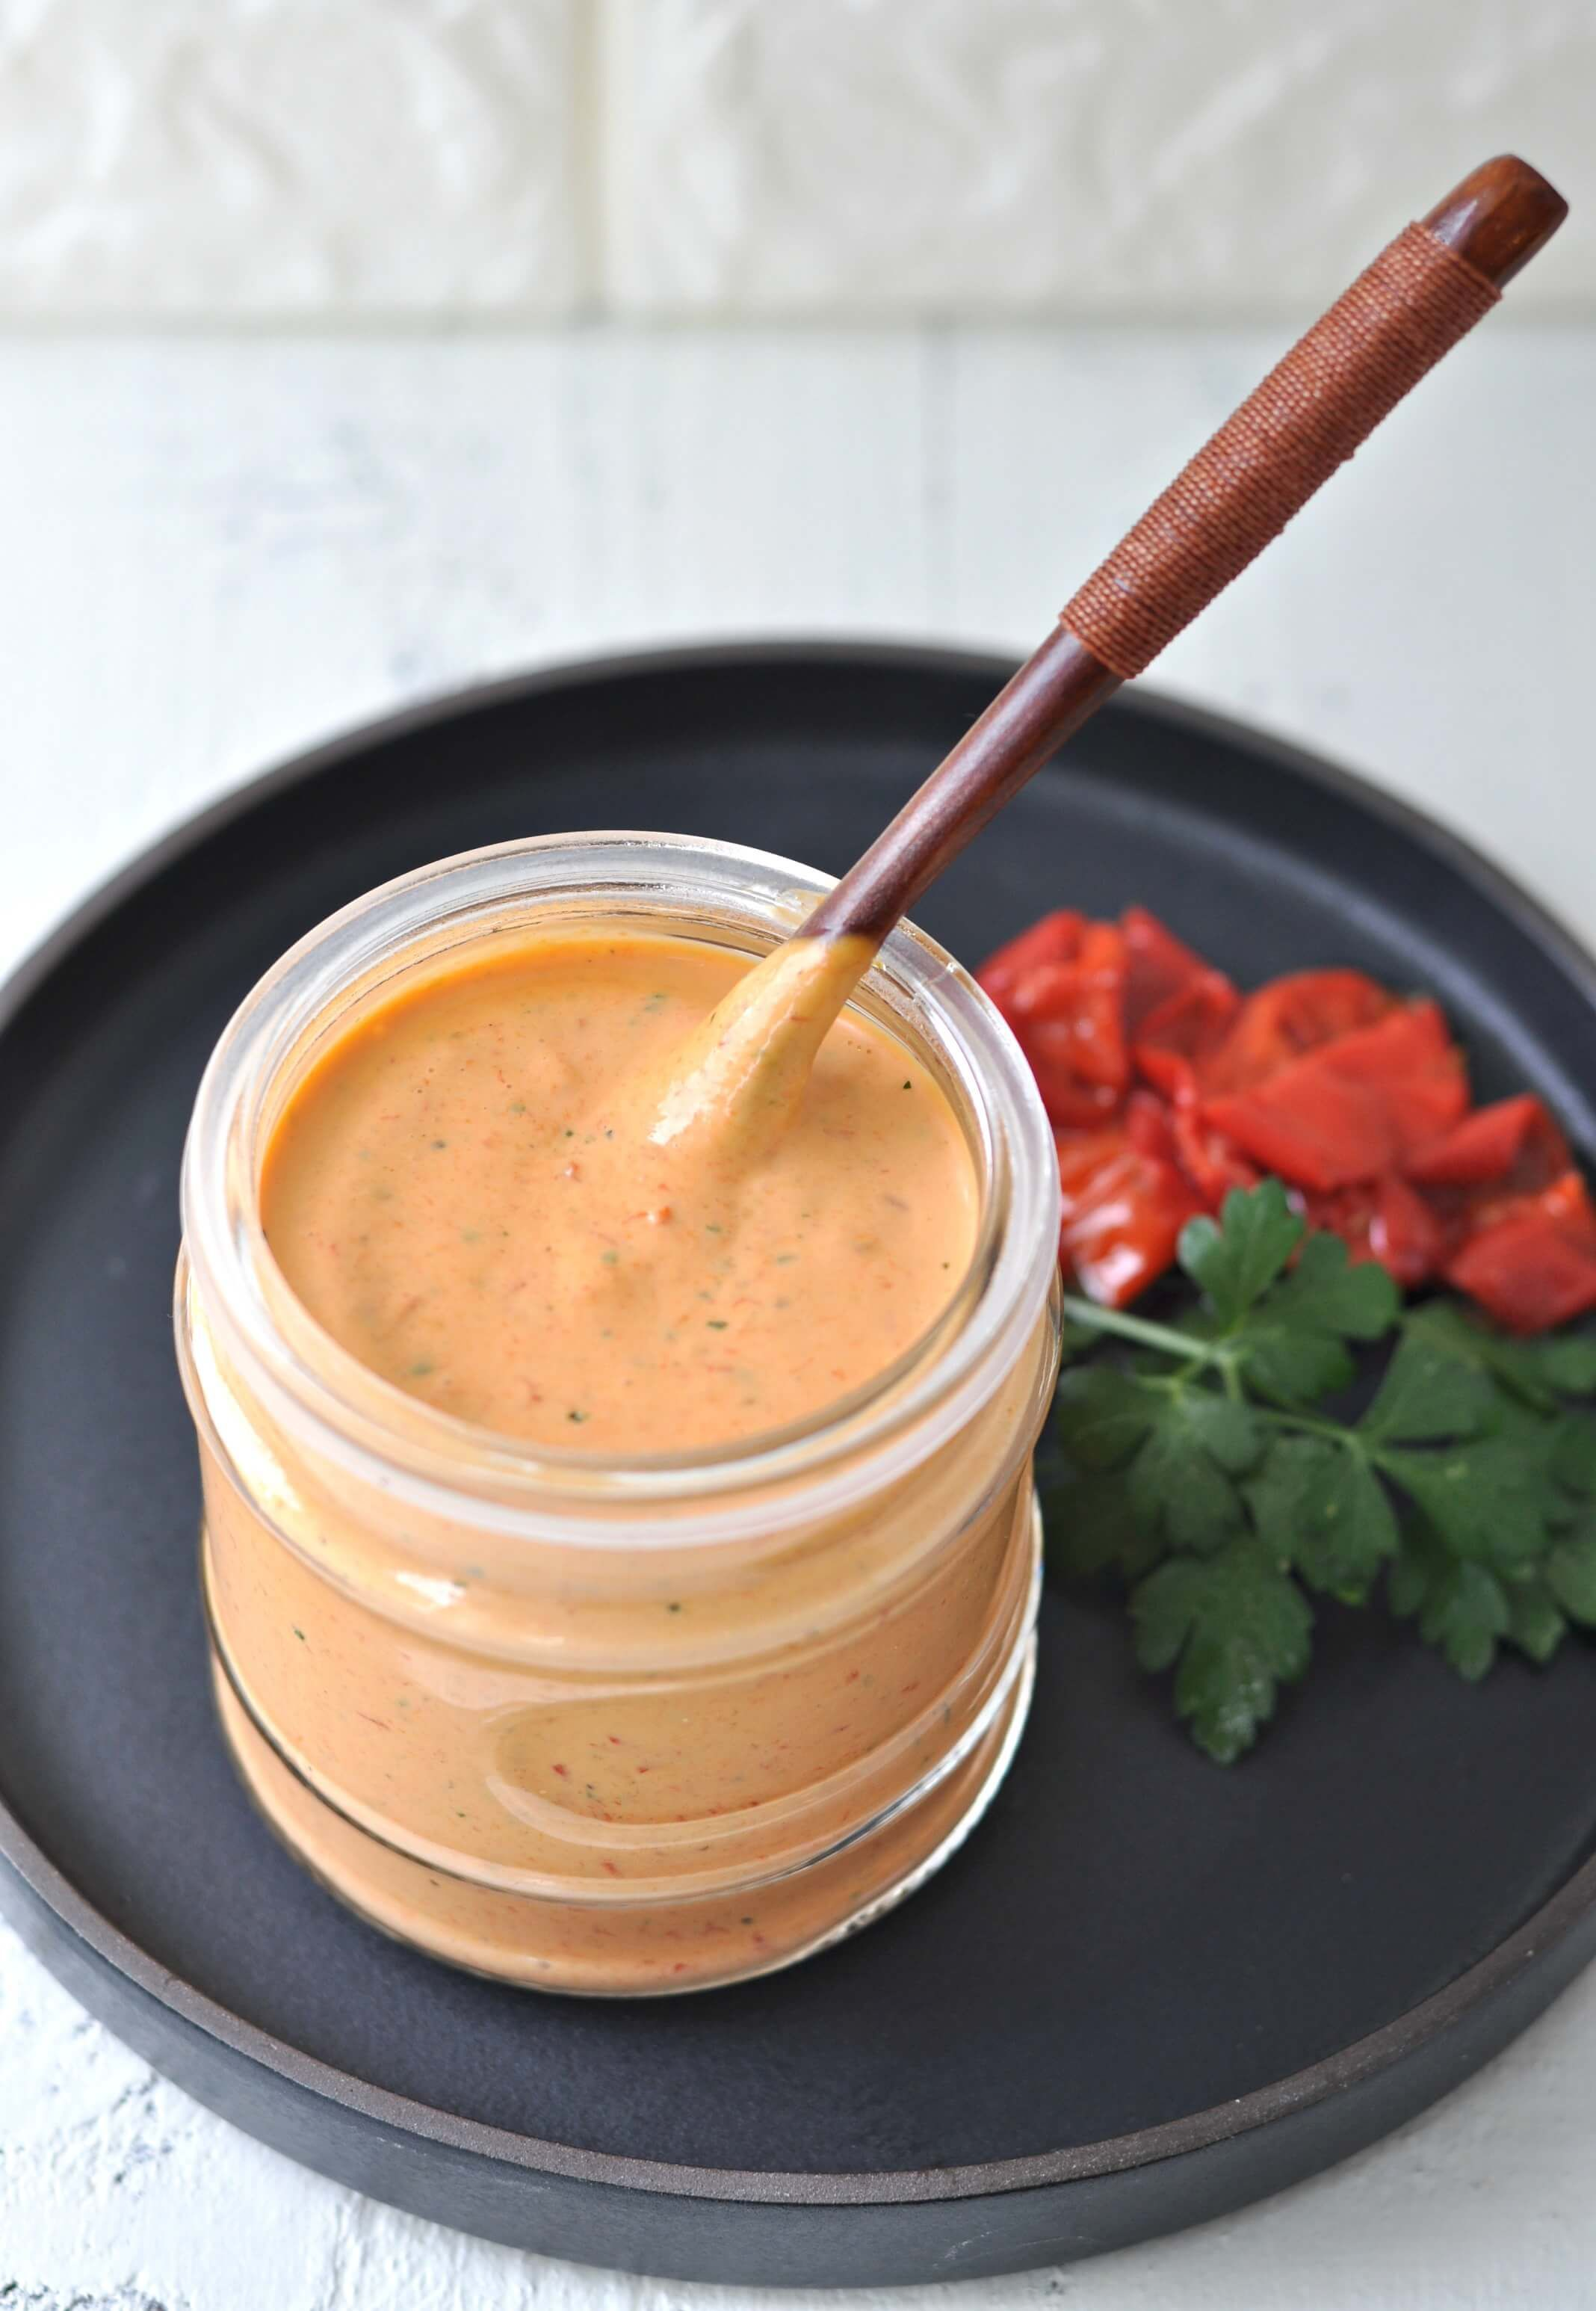 Roasted Red Pepper Garlic Aioli Peace Love And Low Carb Recipe Stuffed Peppers Garlic Aioli Roasted Red Peppers Recipes [ 3092 x 2136 Pixel ]